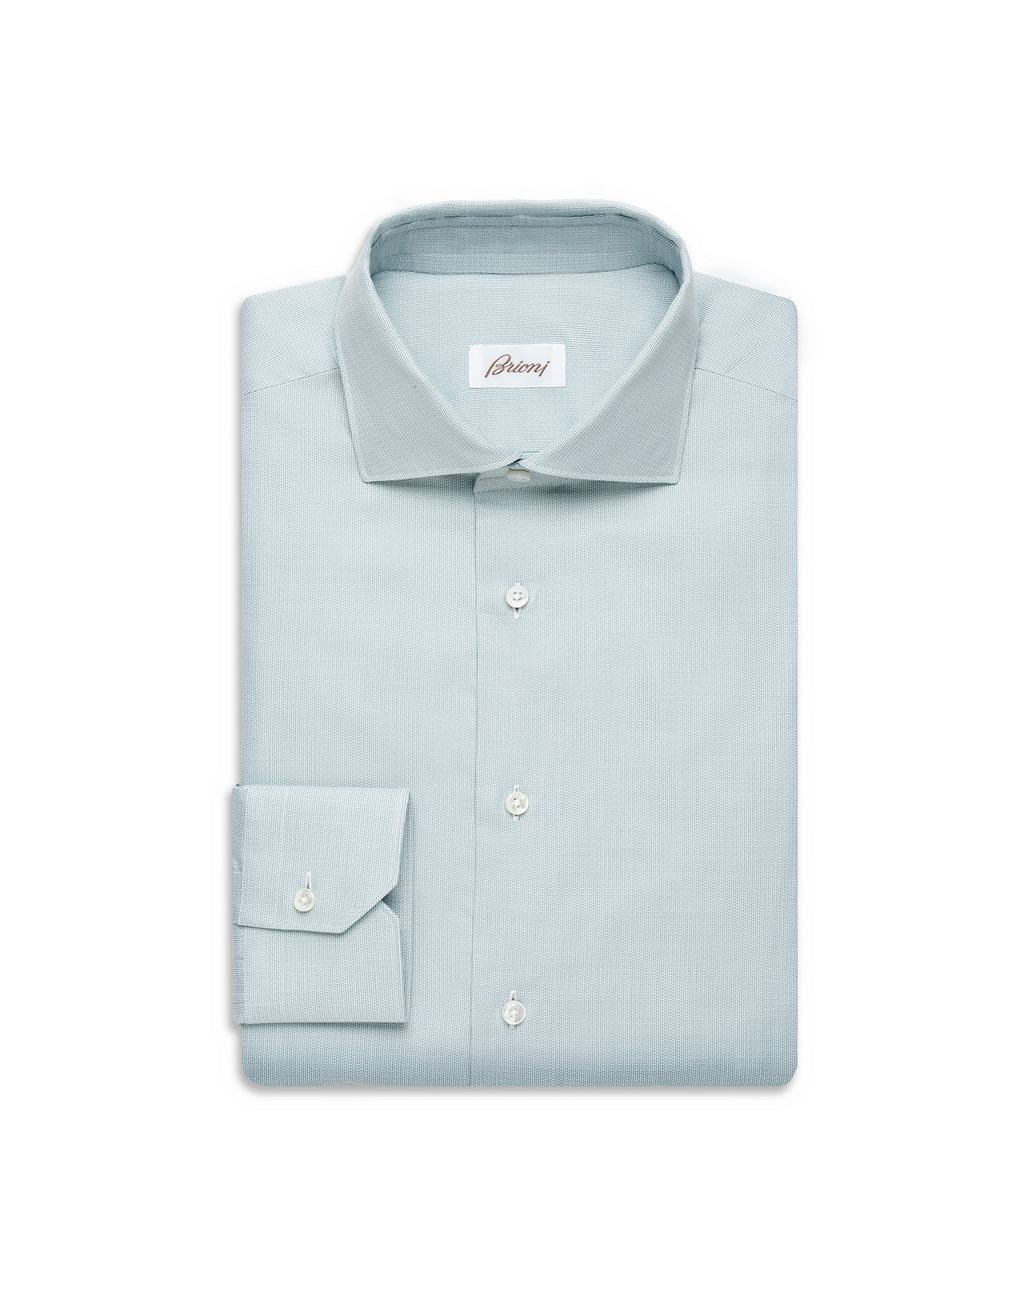 BRIONI Light Green Hopsack Formal Shirt Formal shirt [*** pickupInStoreShippingNotGuaranteed_info ***] f